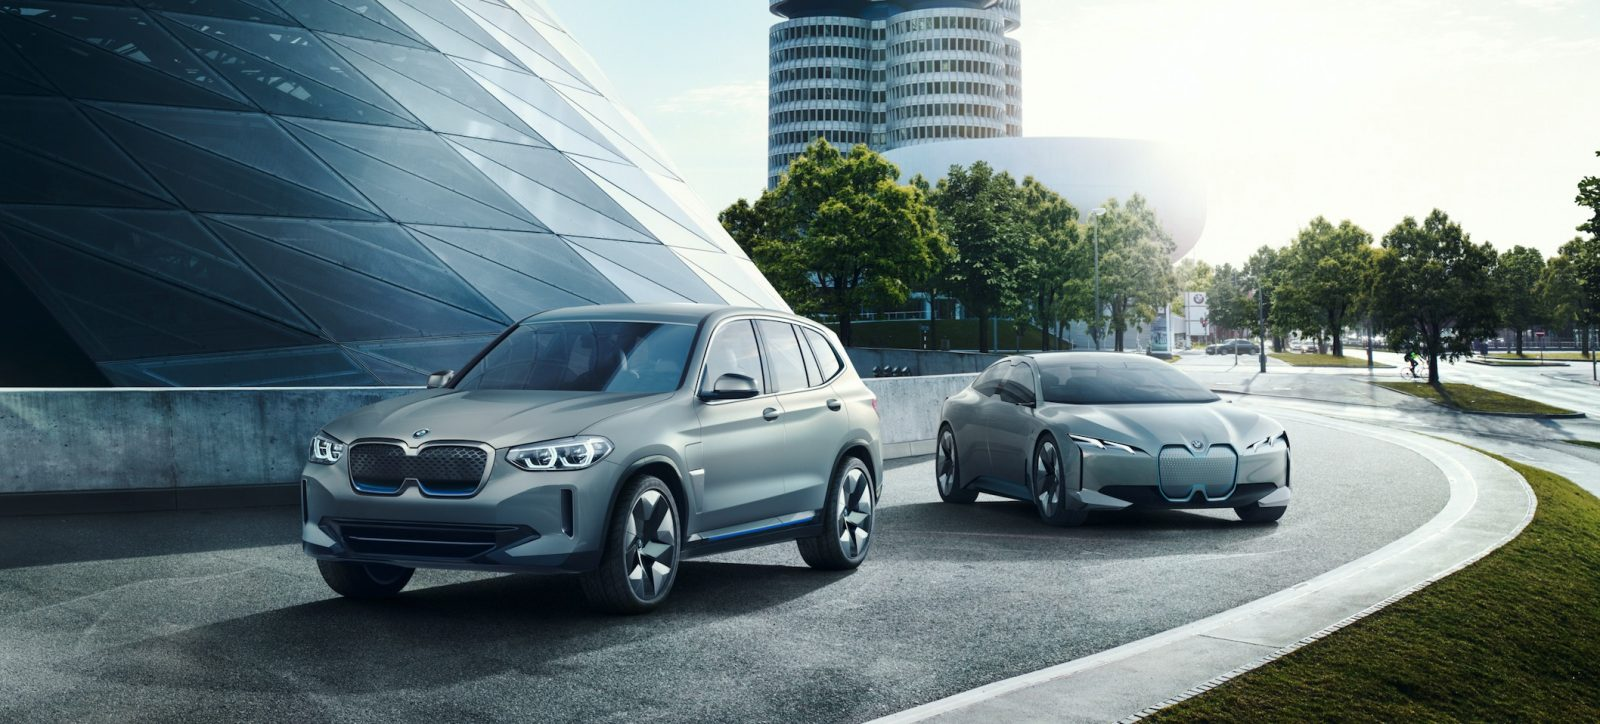 BMW-iX3-electric-SUV